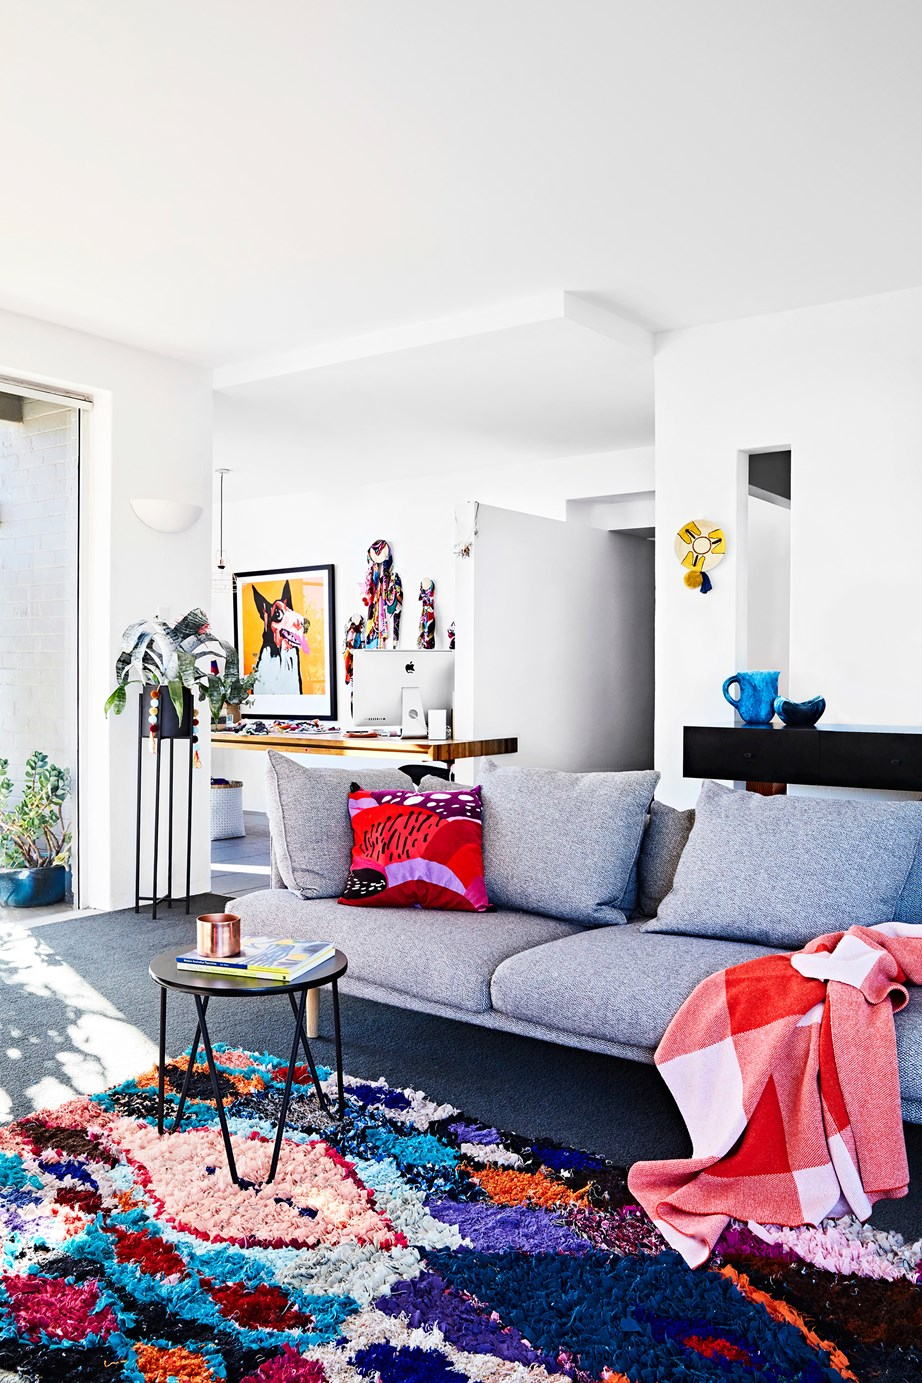 """Its connection to nature, close proximity to the beach, and rich mid-century architecture"" is what won the owners of this [1950s home in Beaumaris, Victoria](https://www.homestolove.com.au/a-colourful-and-eclectic-mid-century-home-5188